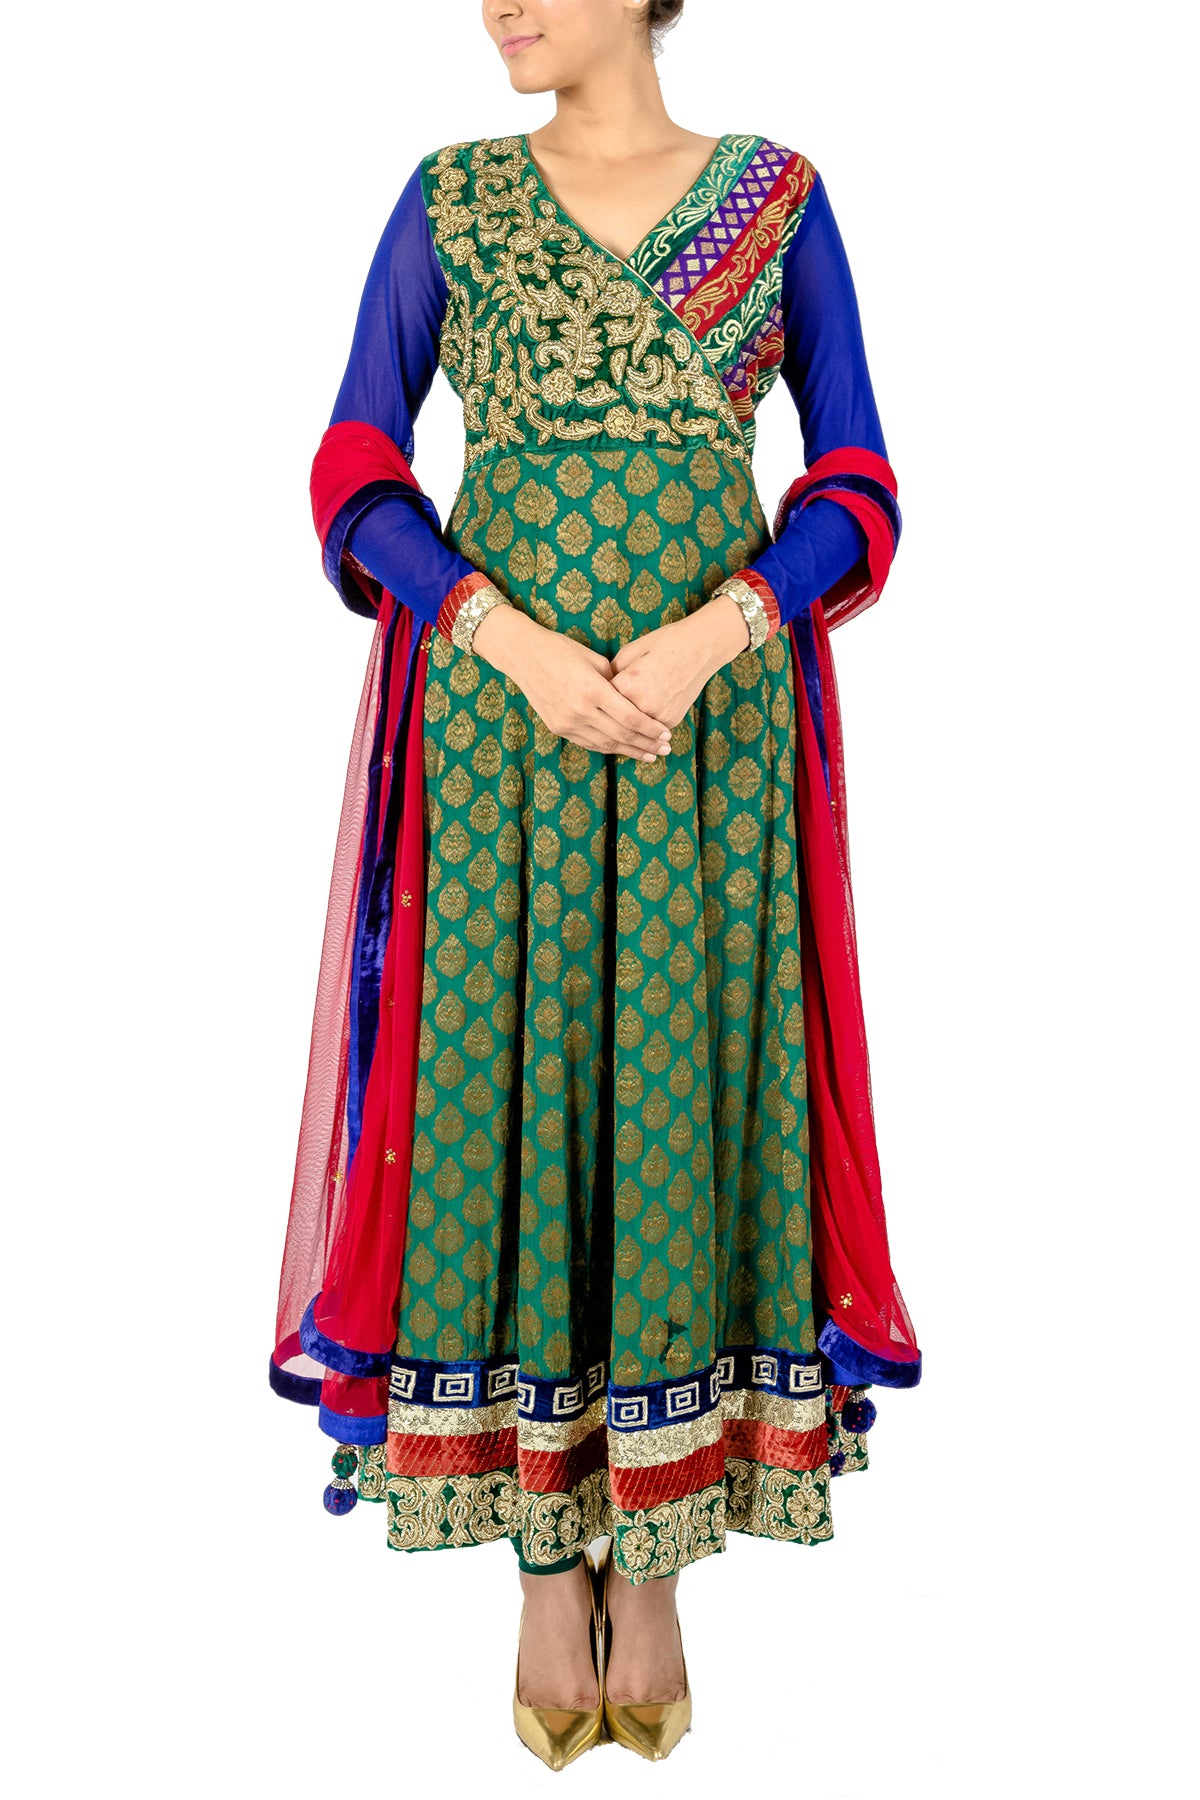 This green anarkali with blue sleeves has hand embroiderey all over bodice to give it a festive look.